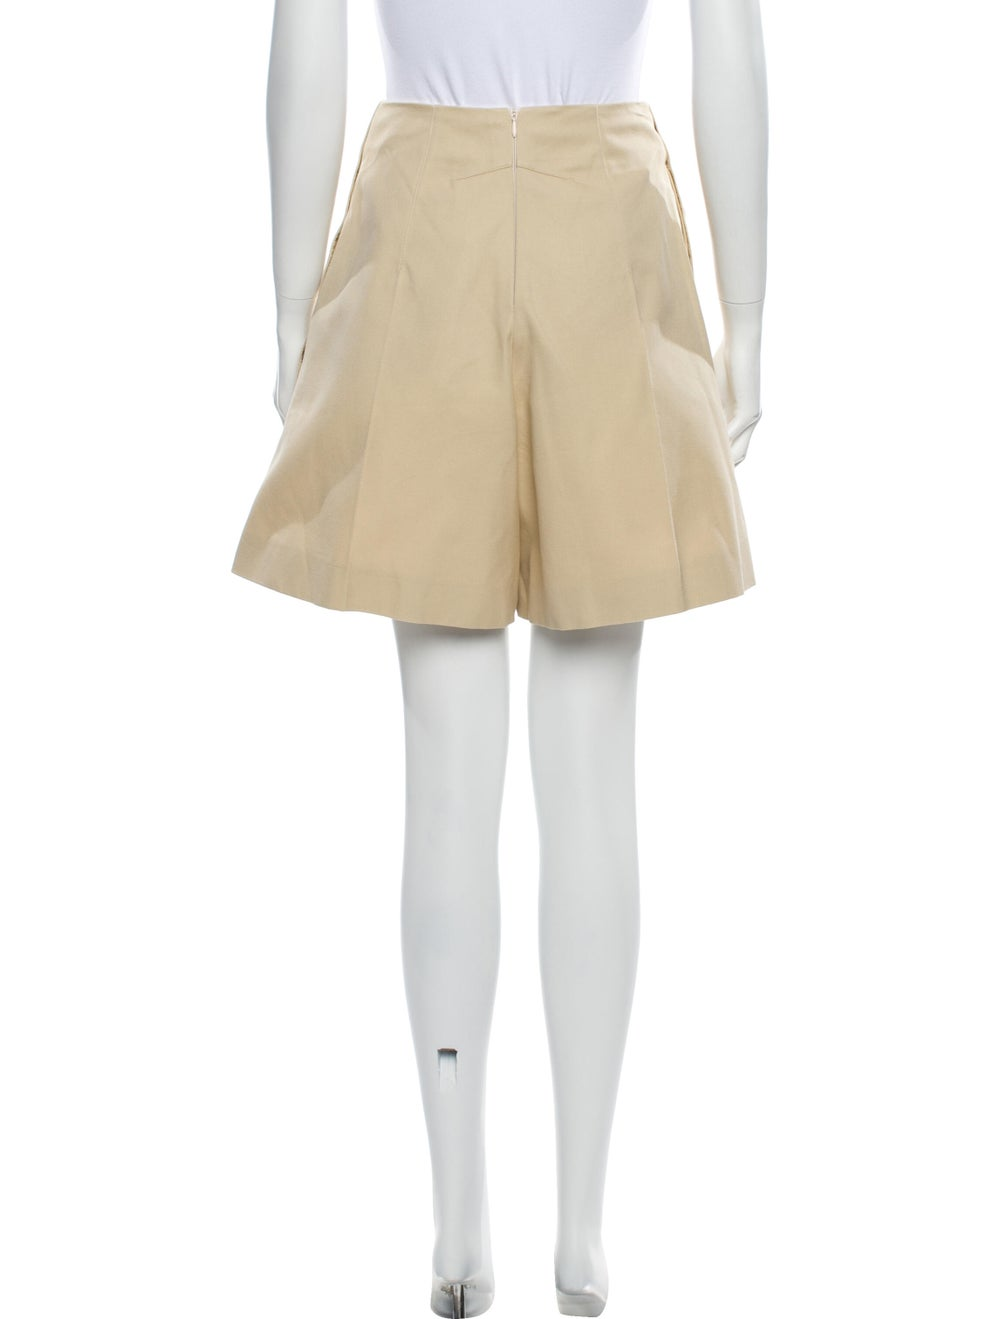 Patou Knee-Length Shorts w/ Tags - image 3